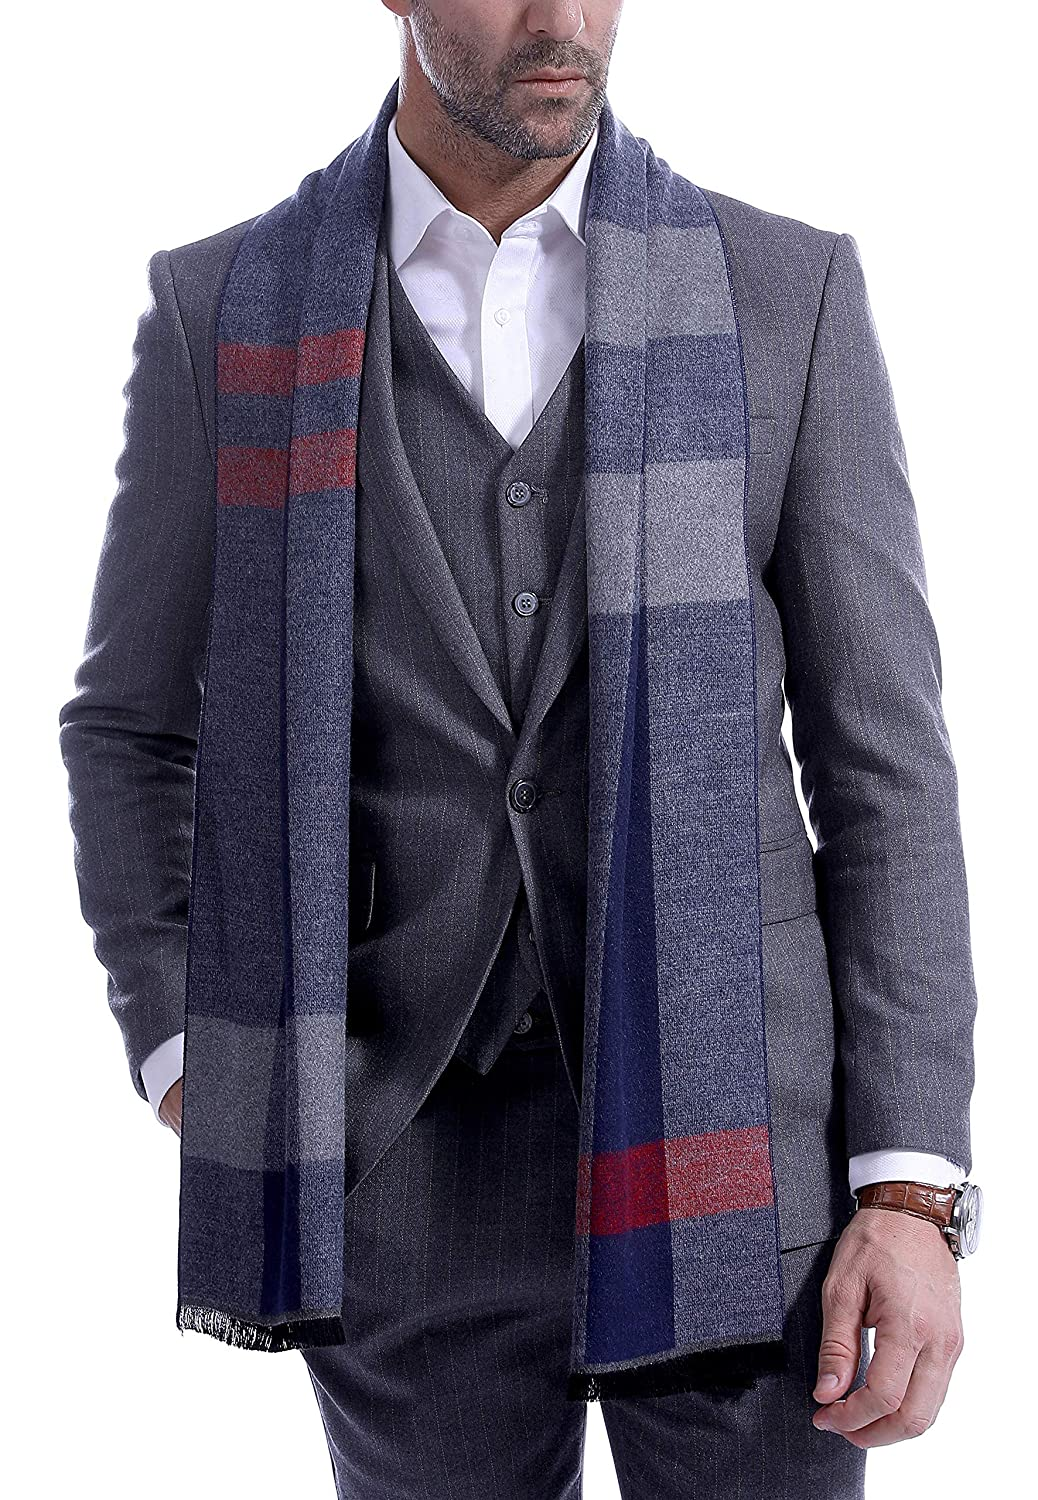 Men's Scarf, Fashion Cashmere Feel Scarves for Men Winter Autumn with Tassels Long Tartan Men' s Scarves